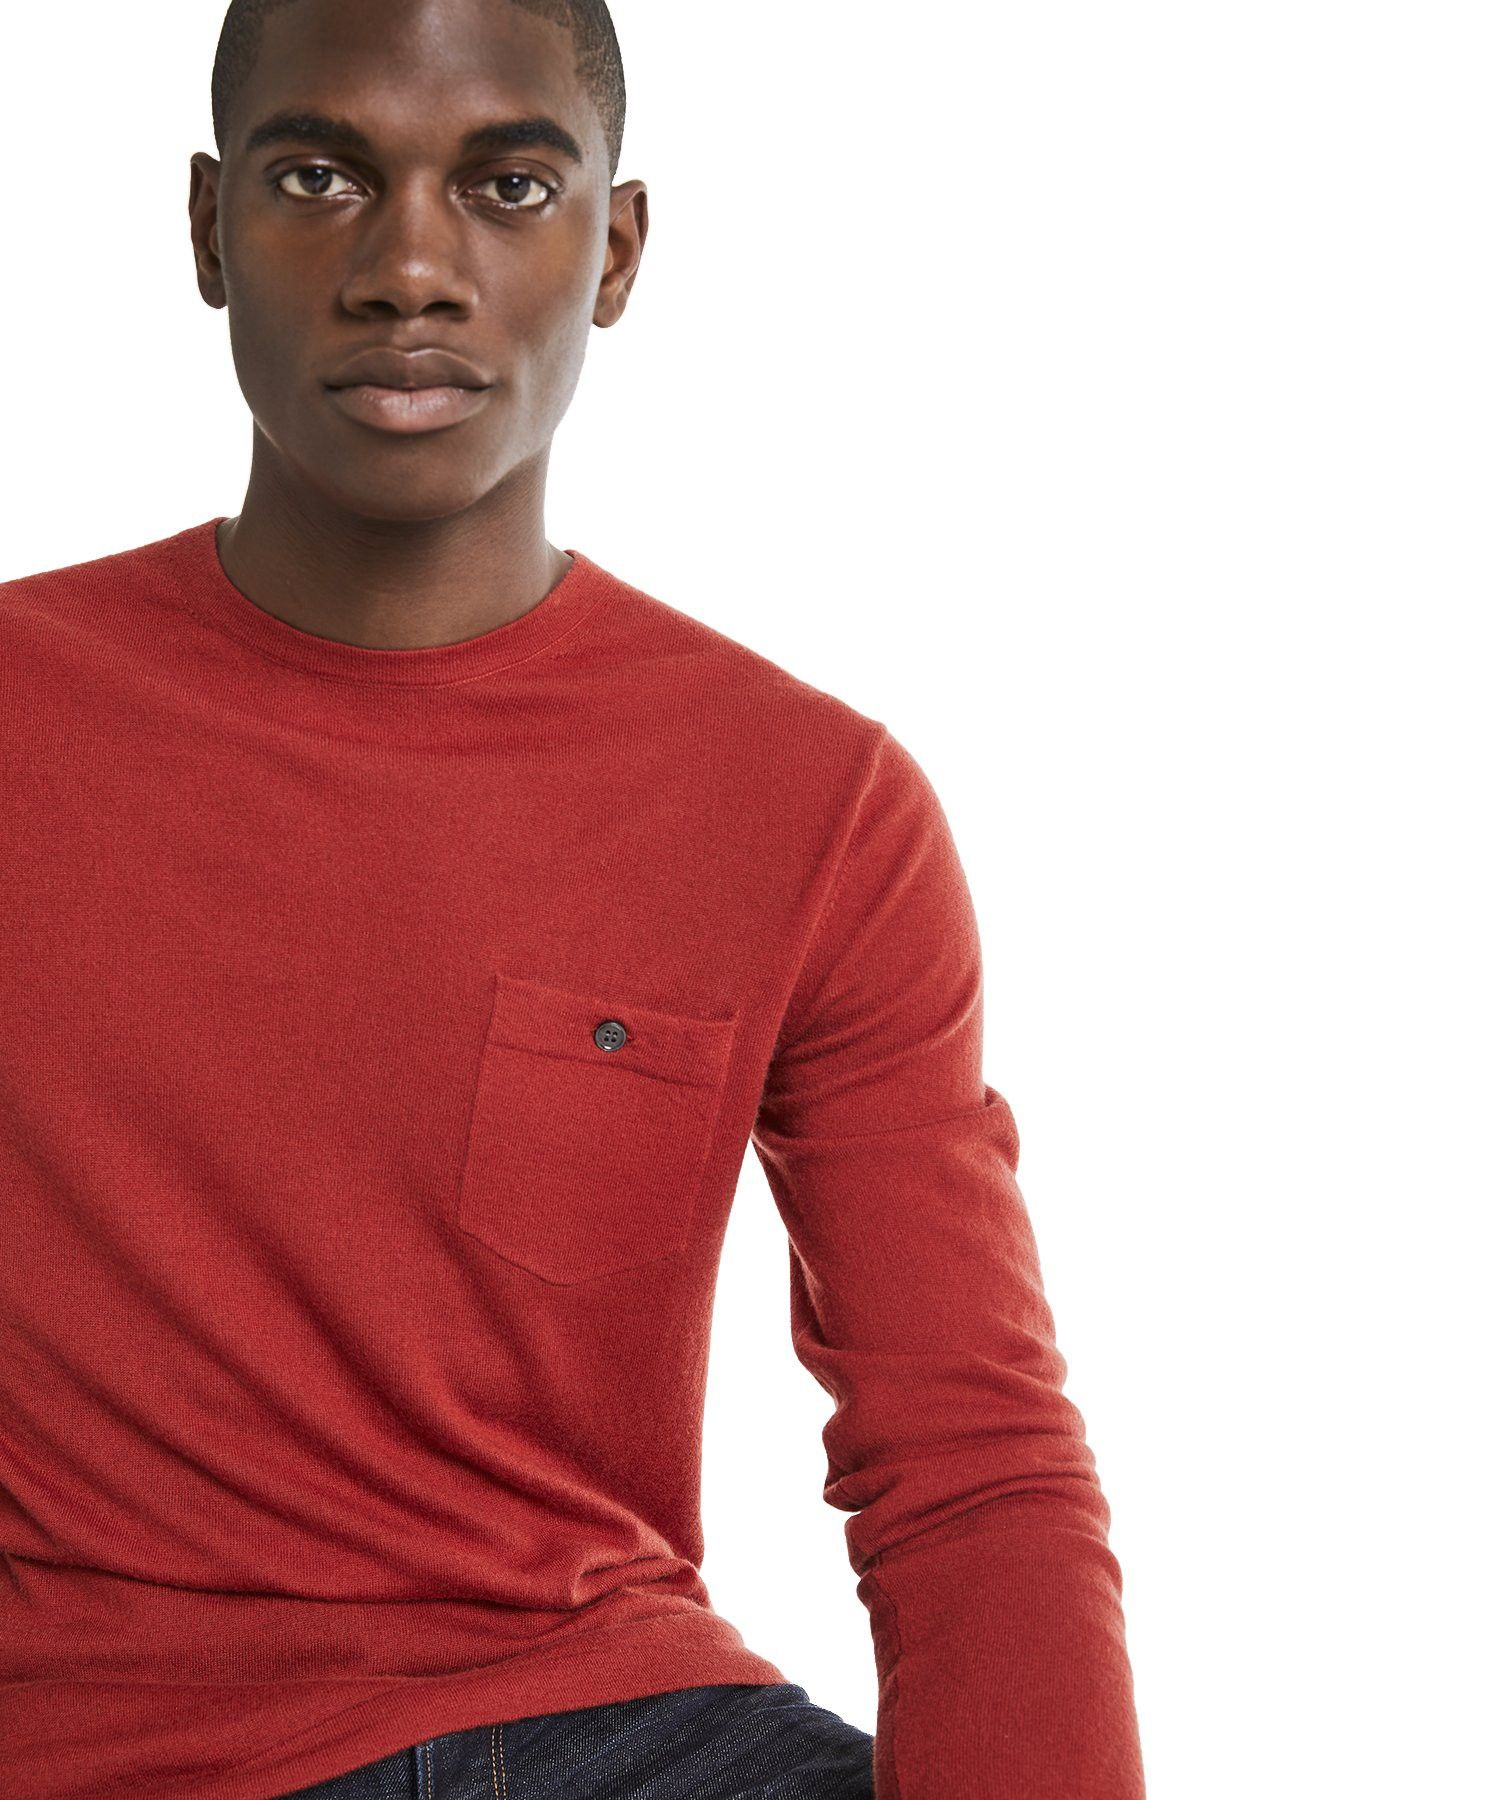 Todd Snyder Cashmere T Shirt Sweater In Burnt Orange Xxl Sweater Shirt Men Sweater Shirts [ 1800 x 1500 Pixel ]